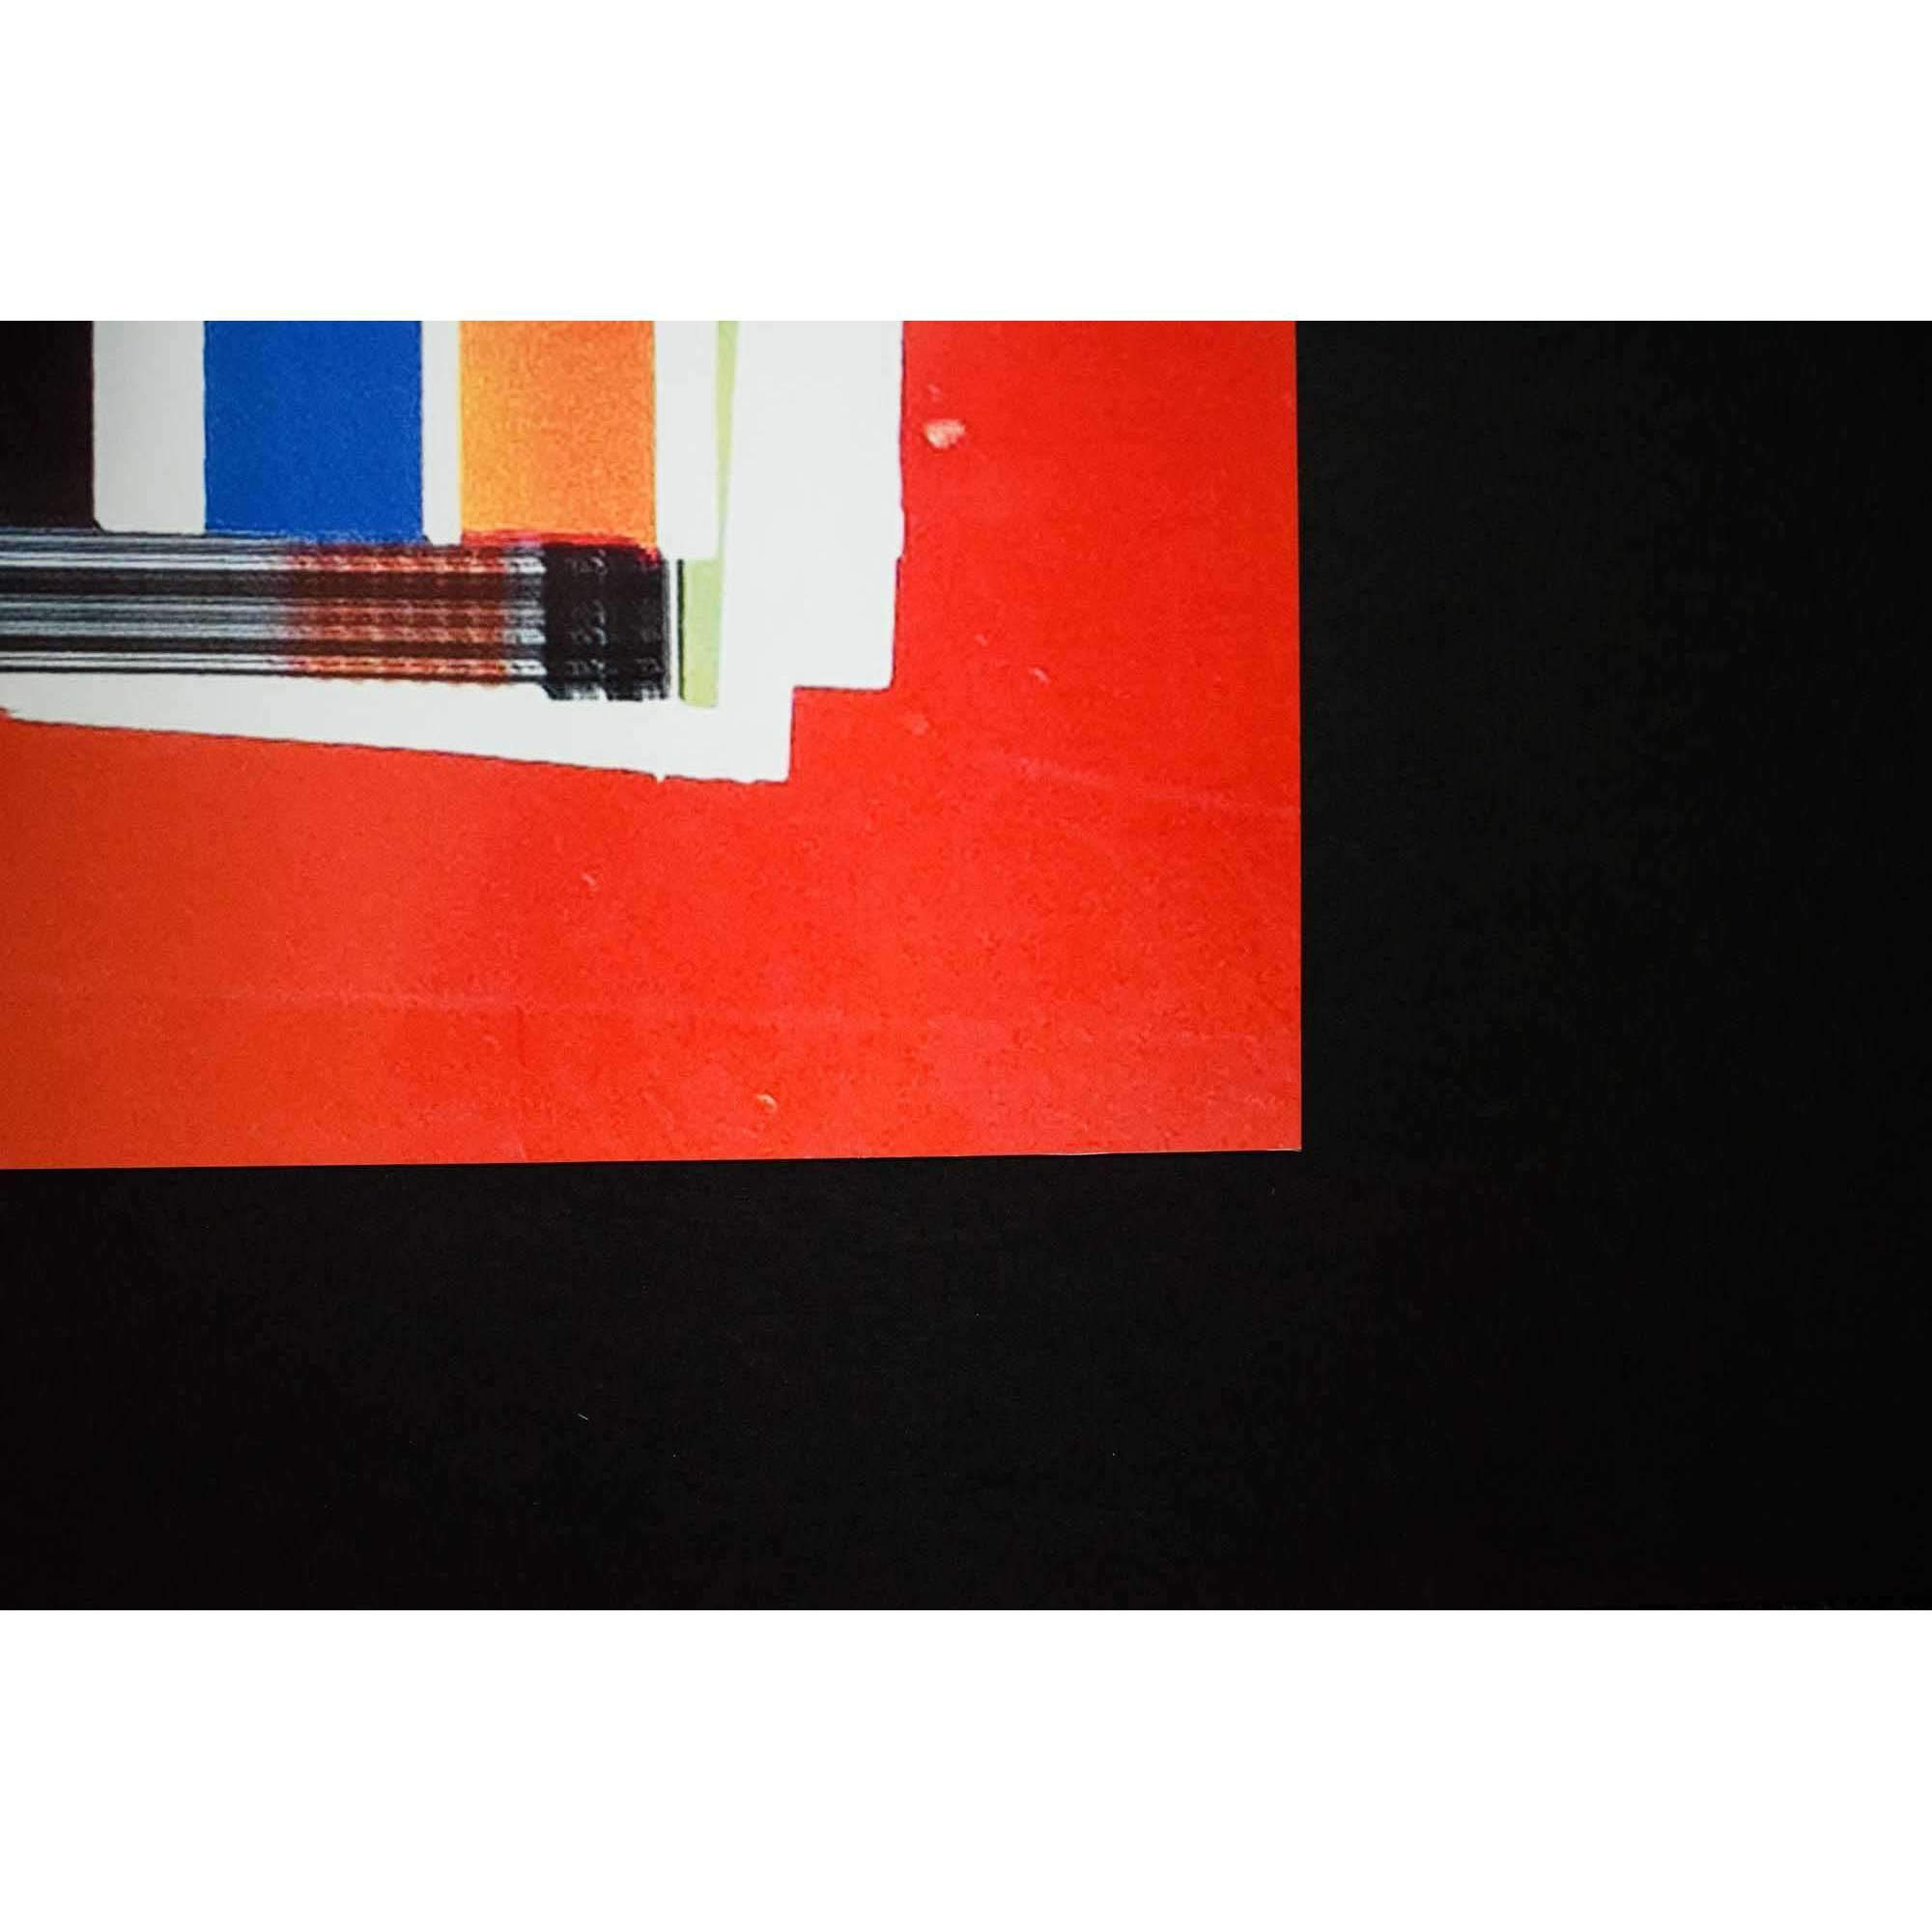 Wade Guyton, IMG_1919.JPG, 2013 | Lougher Contemporary